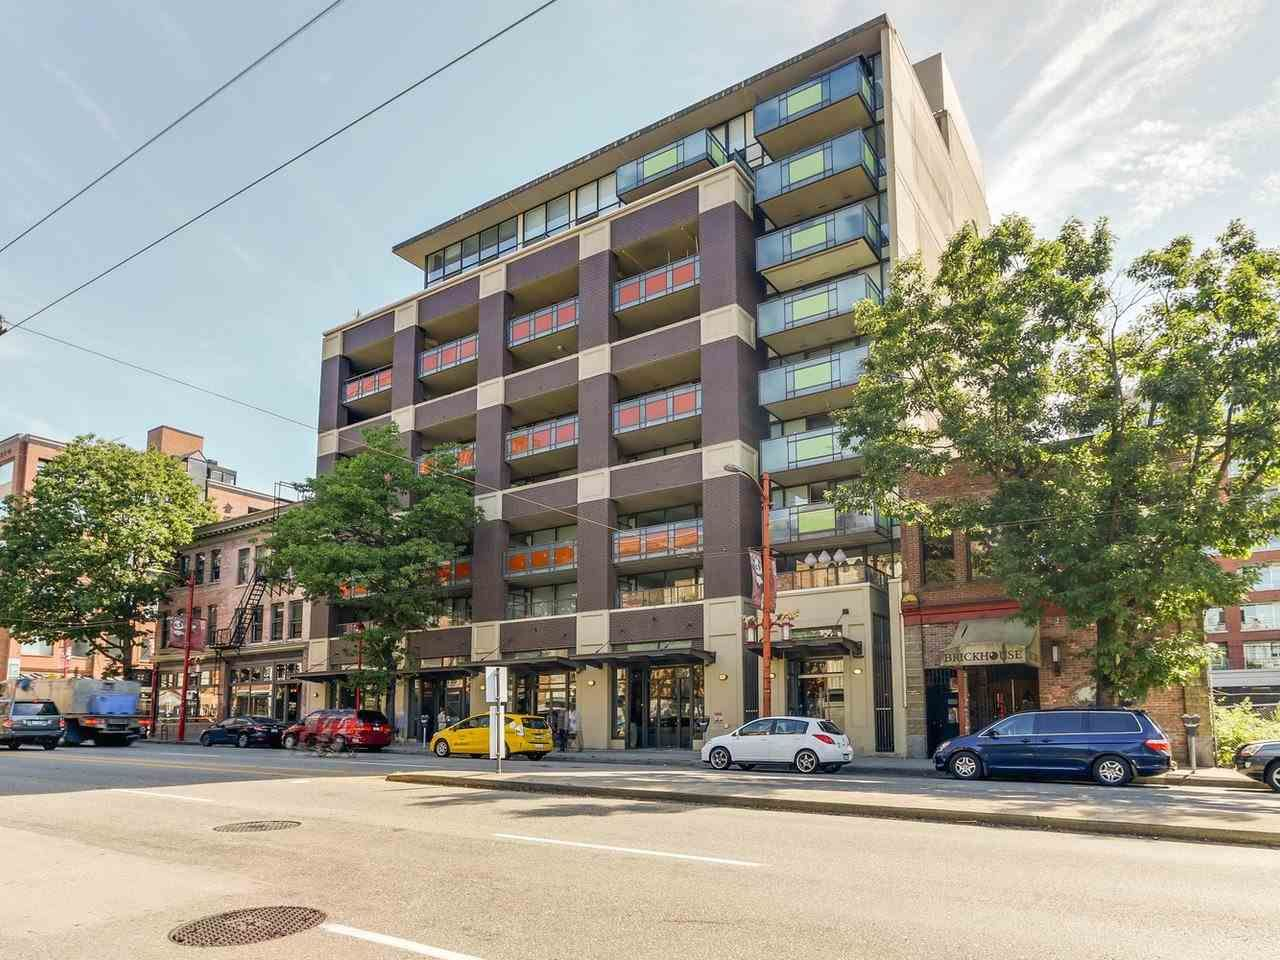 """Main Photo: 509 718 MAIN Street in Vancouver: Mount Pleasant VE Condo for sale in """"GINGER"""" (Vancouver East)  : MLS®# R2185070"""